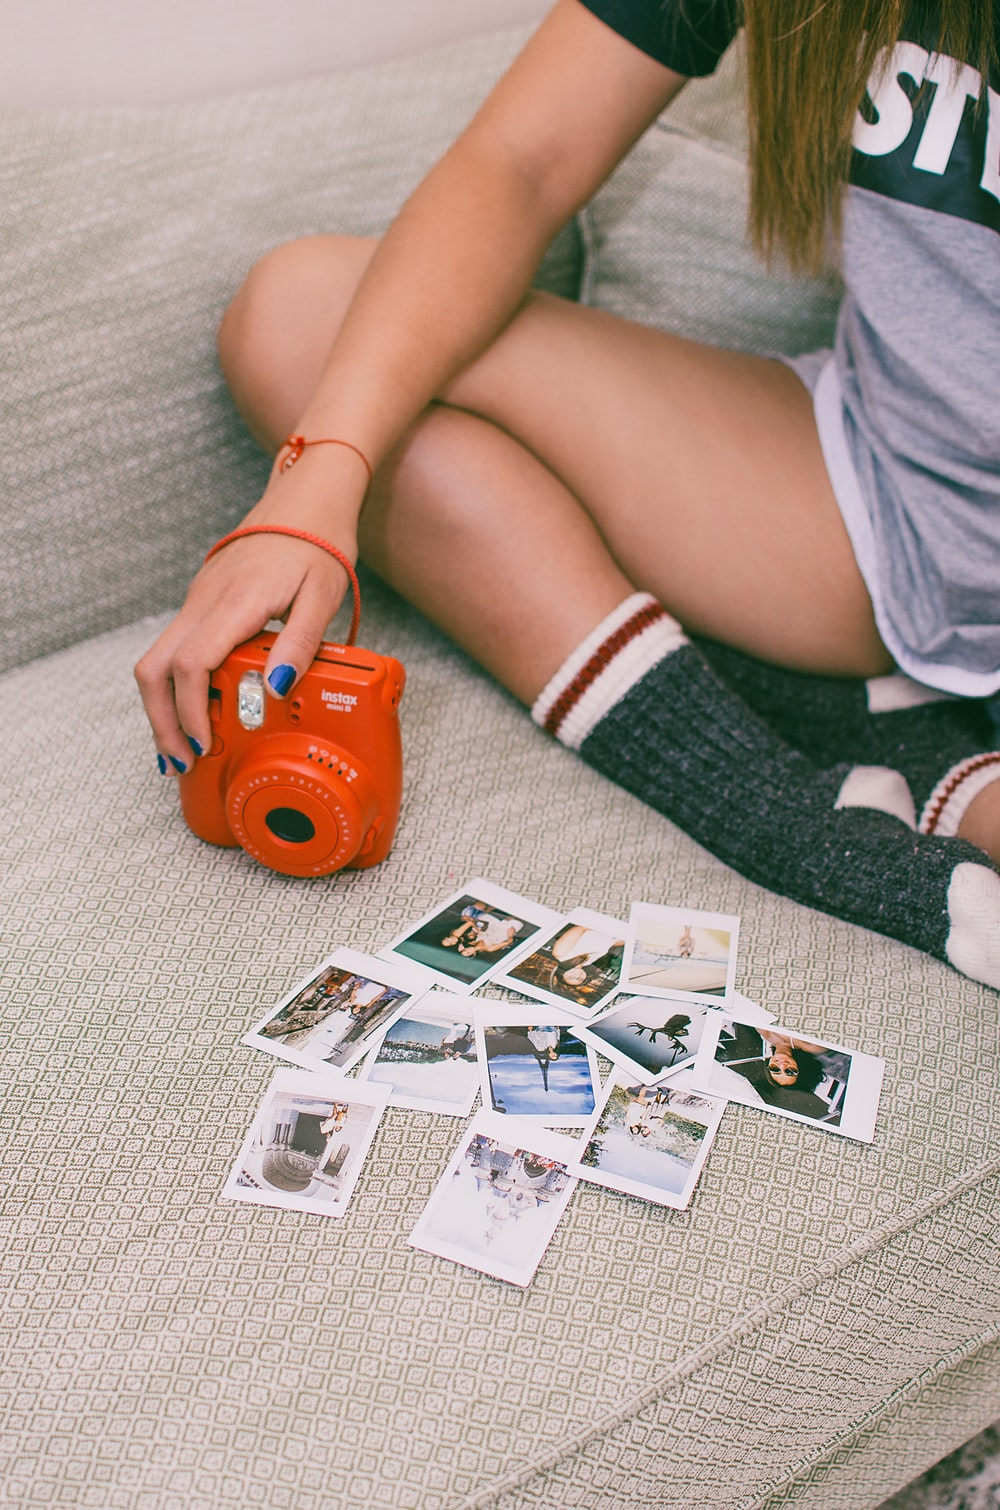 person sitting on couch holding red instant camera